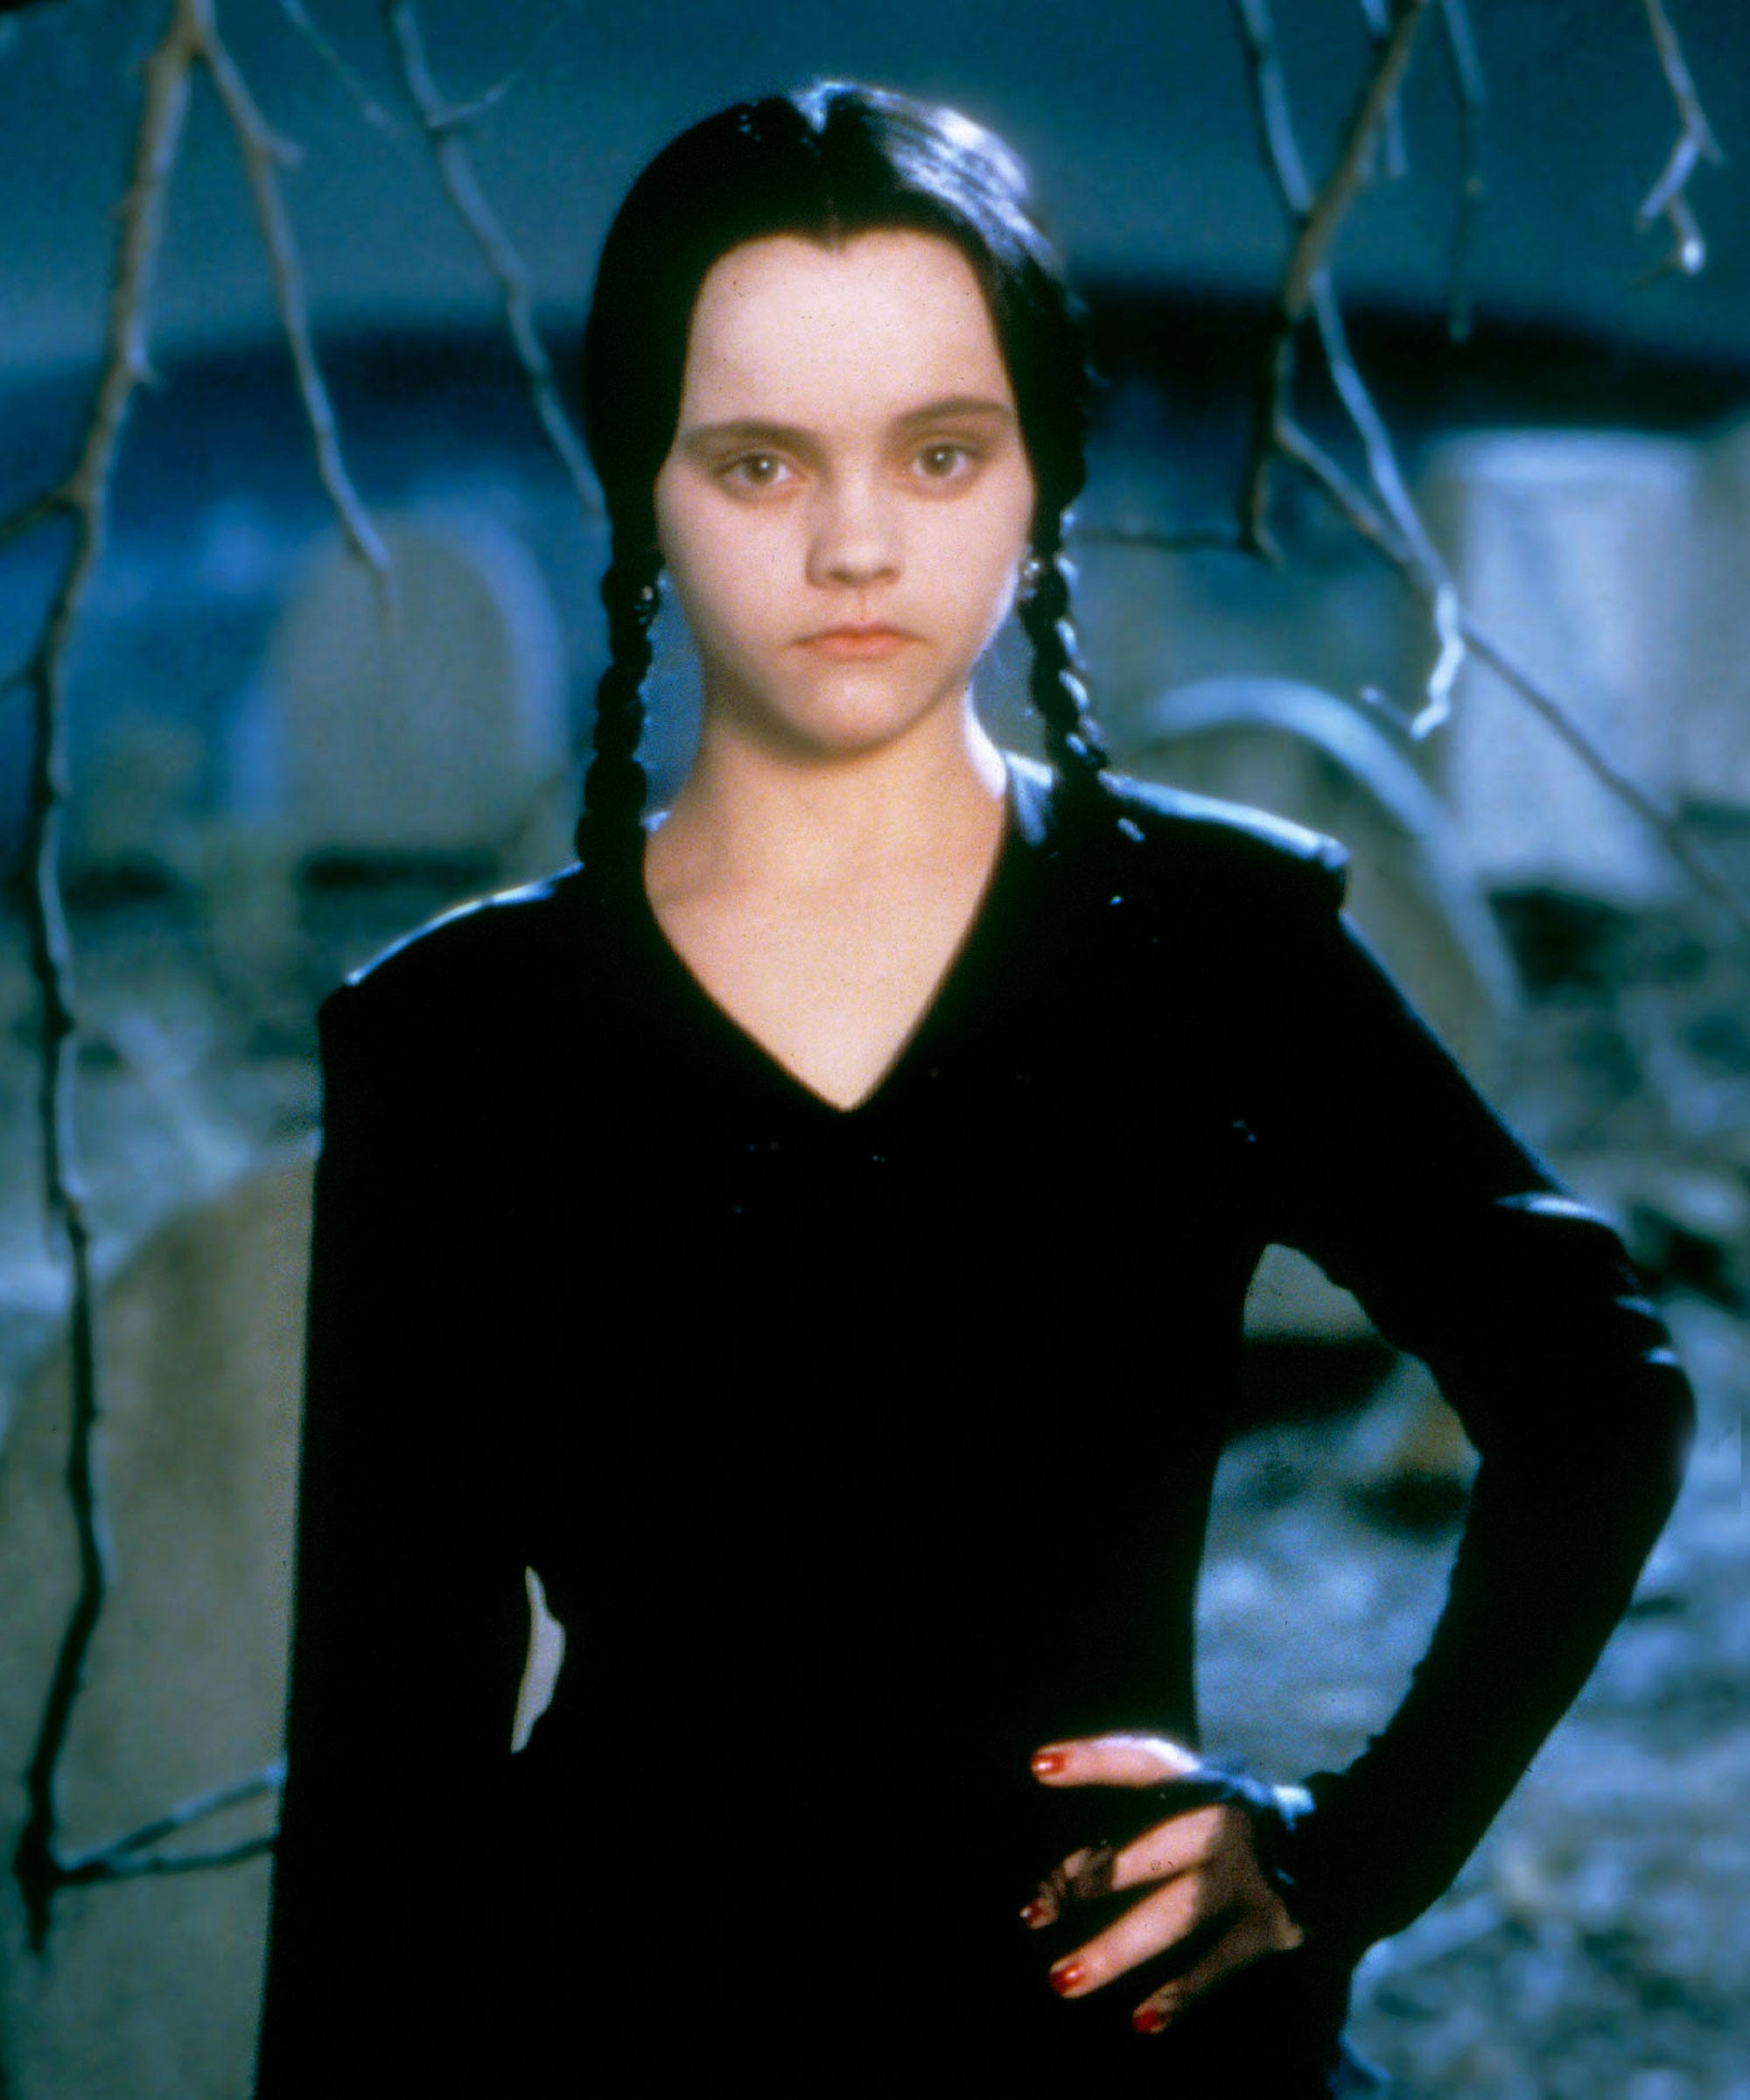 Wednesday Addams Halloween Costume Wig Dress All Black